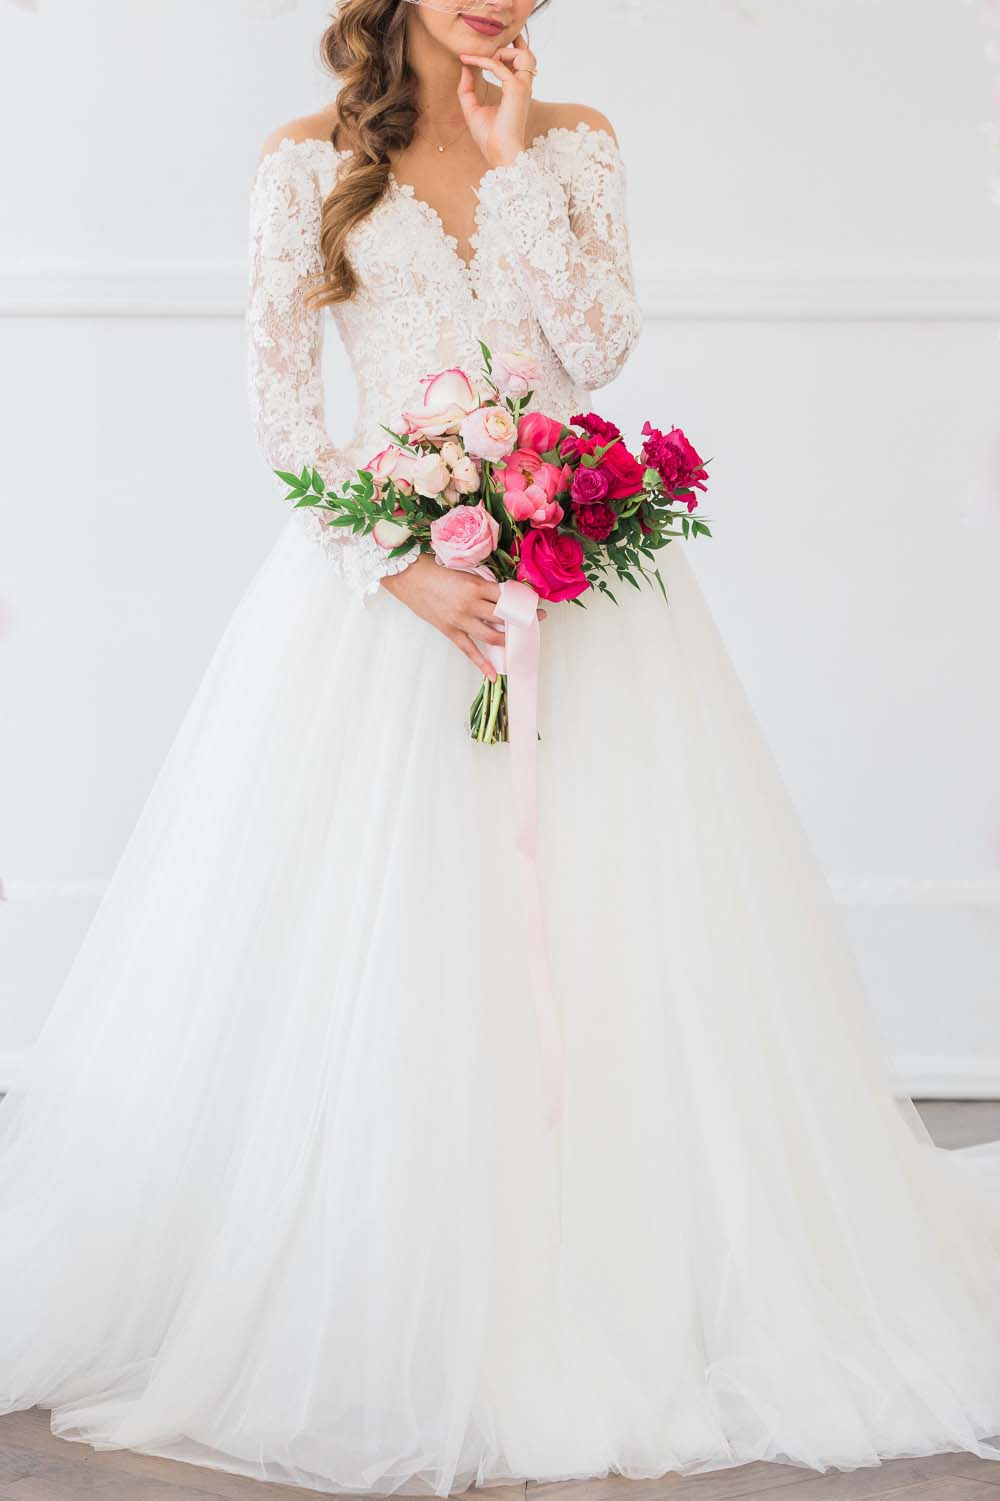 The Prettiest Romantic Pink Wedding Inspiration - bride and bouquet